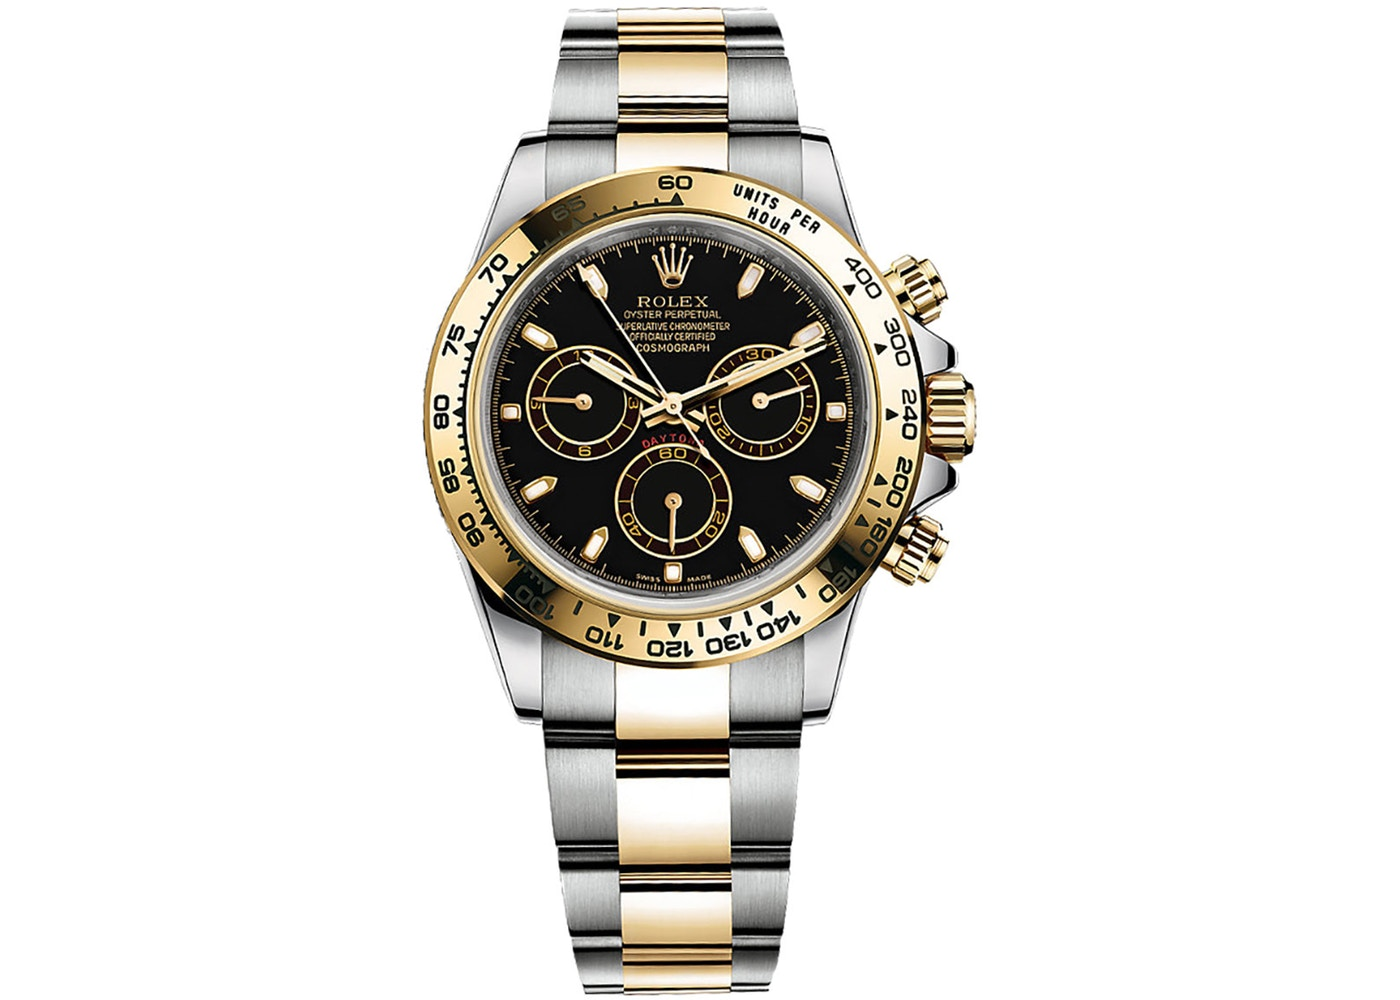 Rolex Cosmograph Daytona Steel and Gold 116503 Black Dial